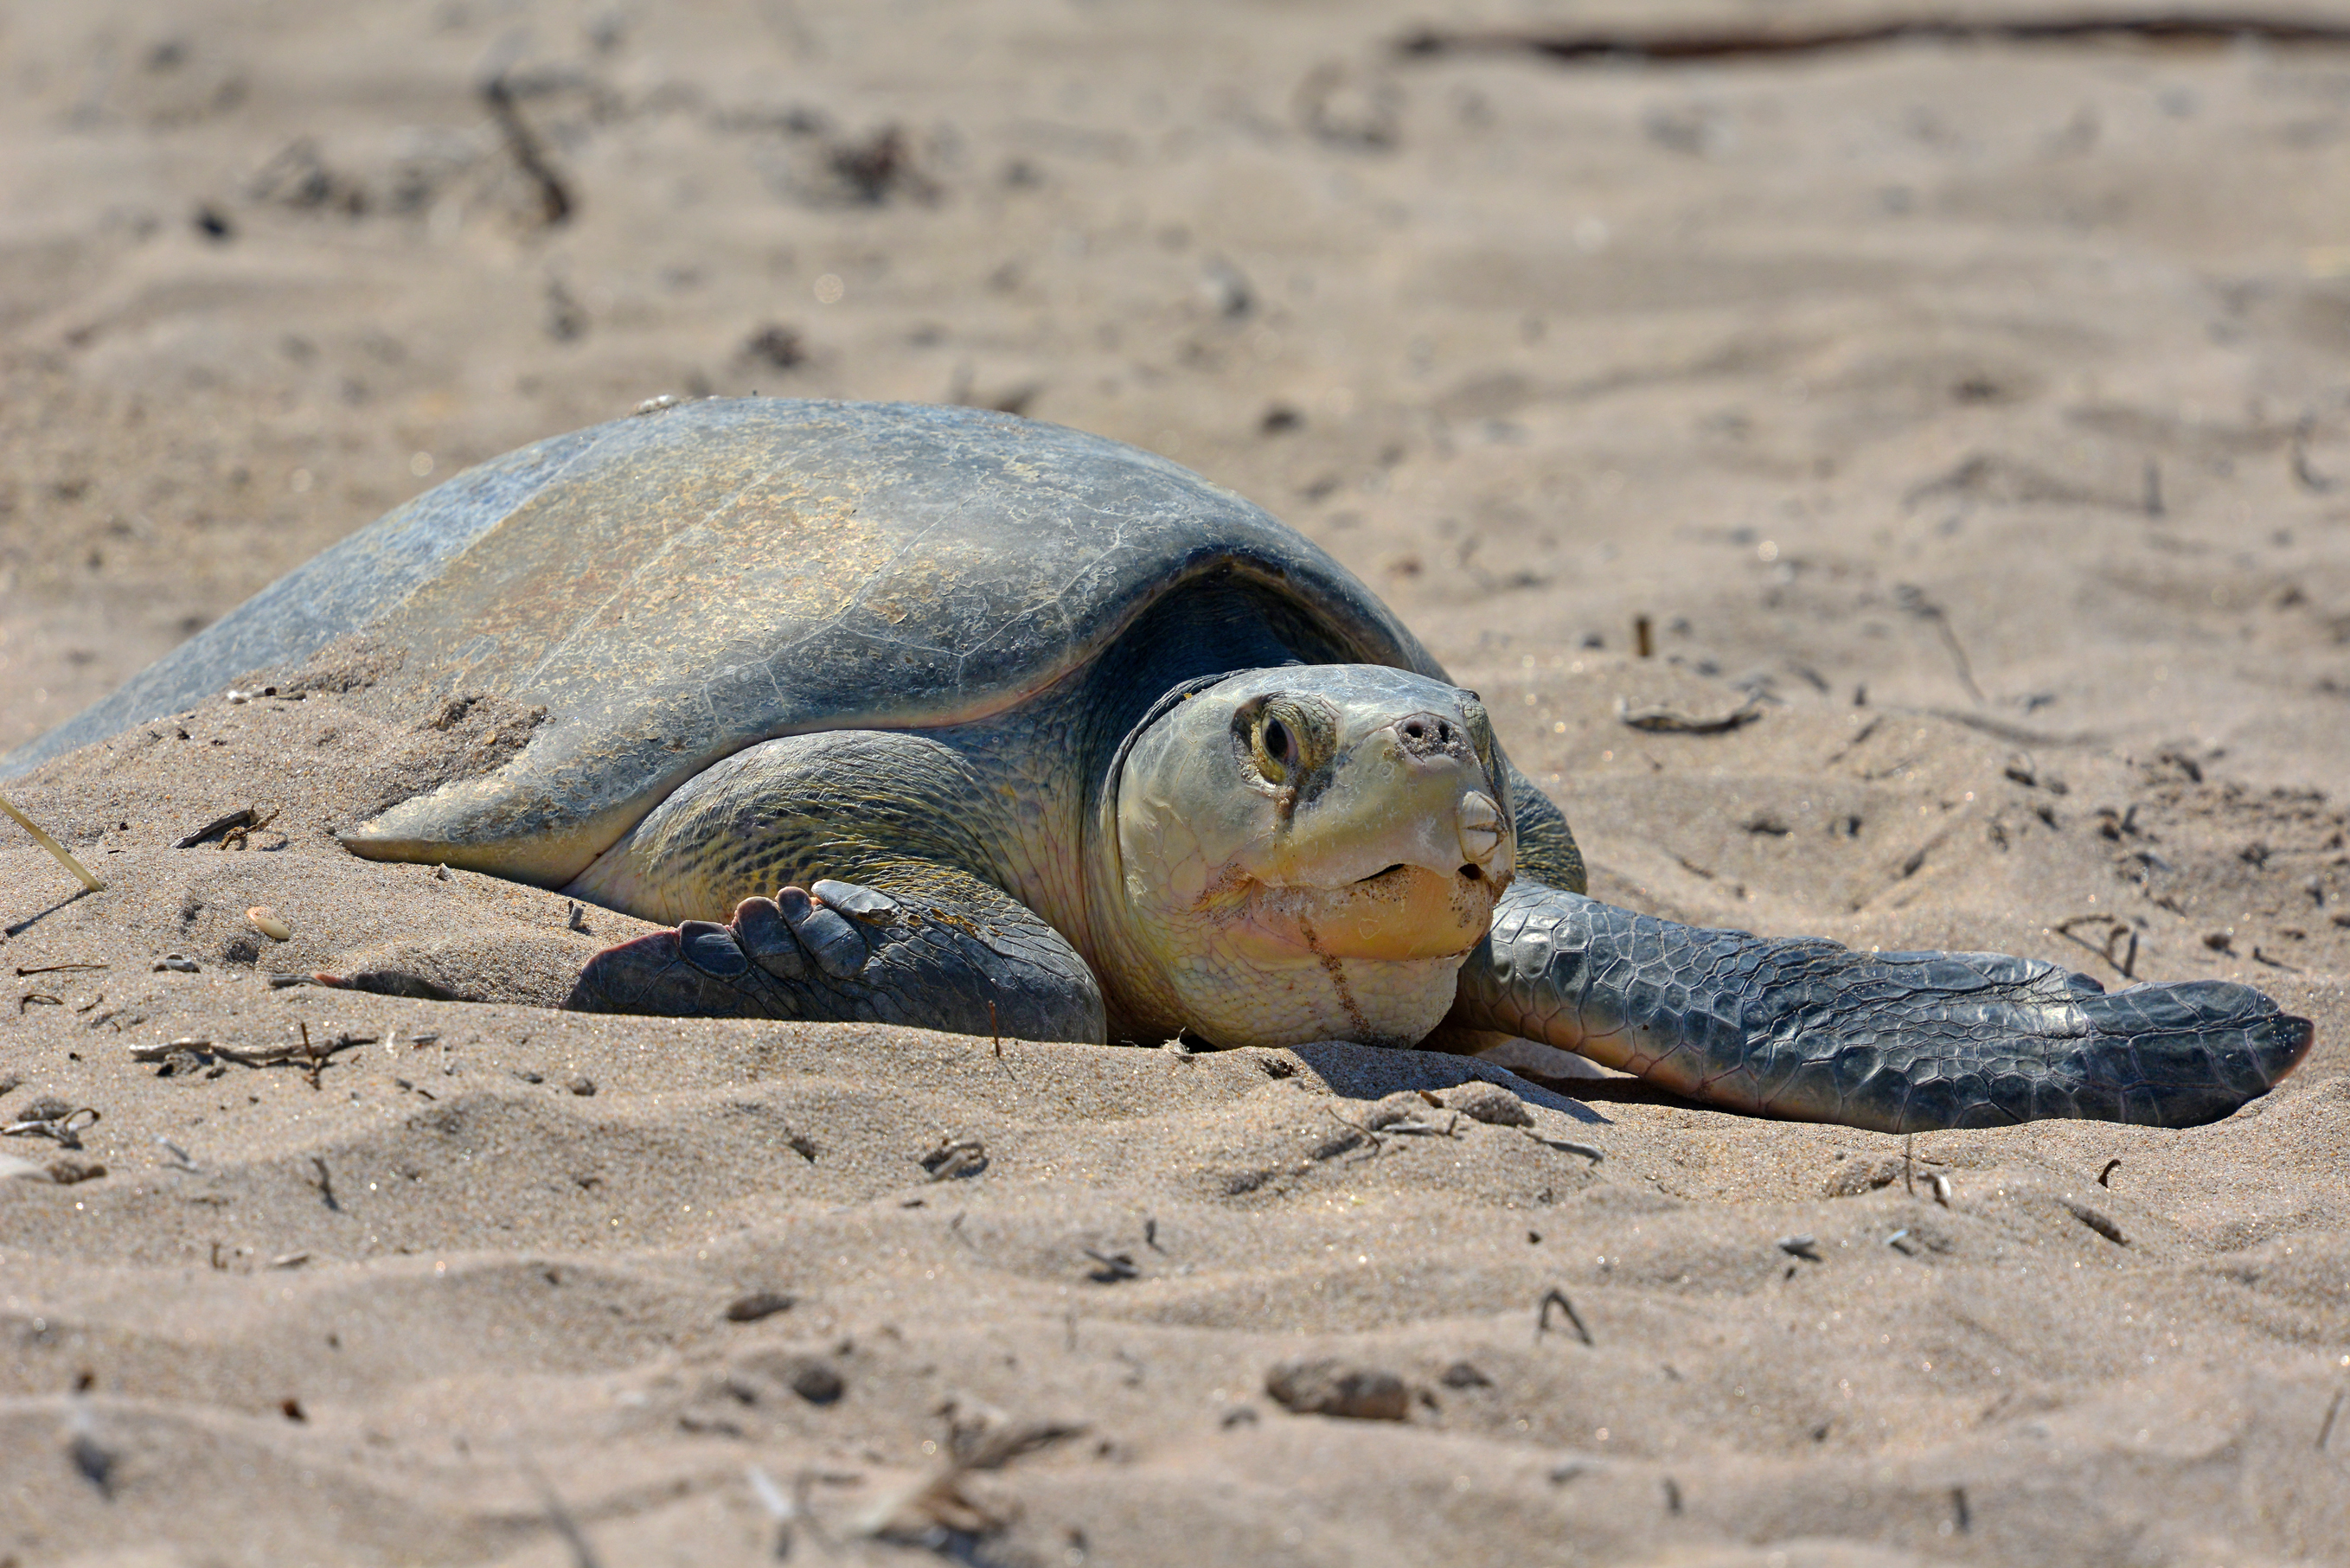 A nesting sea turtle rests on the beach